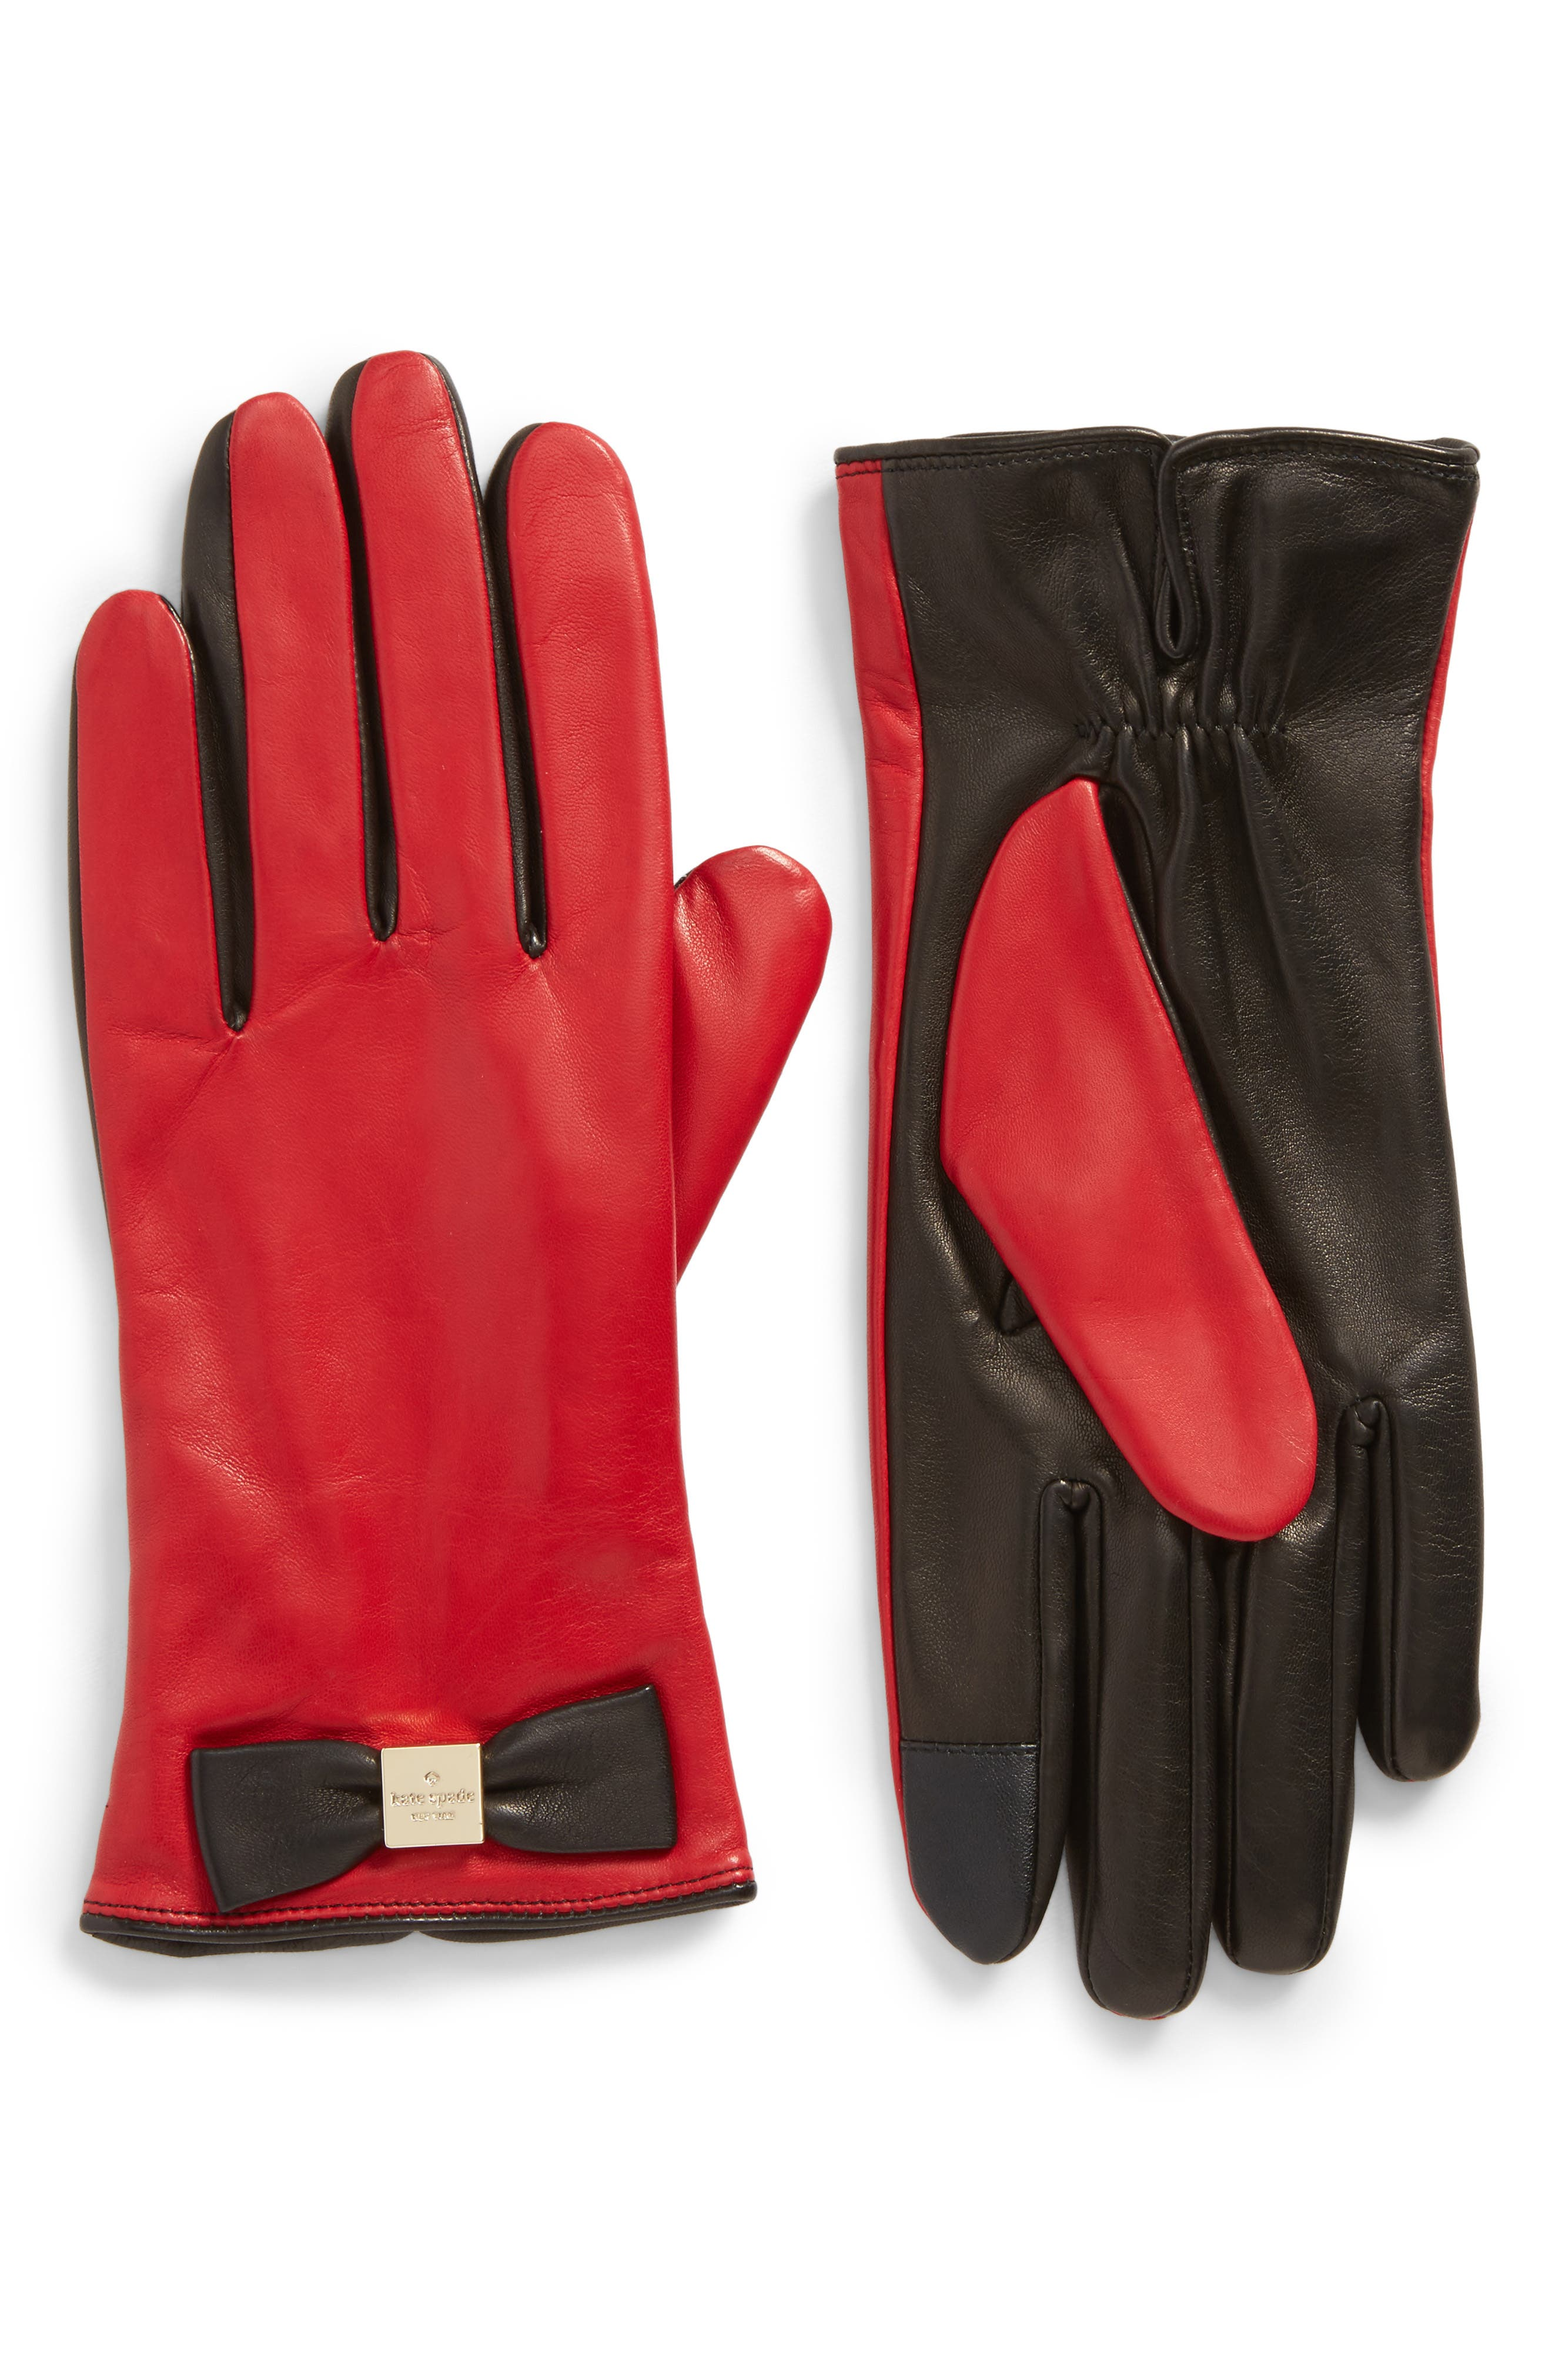 kate spade new york 'bow logo' gloves,                             Main thumbnail 1, color,                             Charm Red/Black